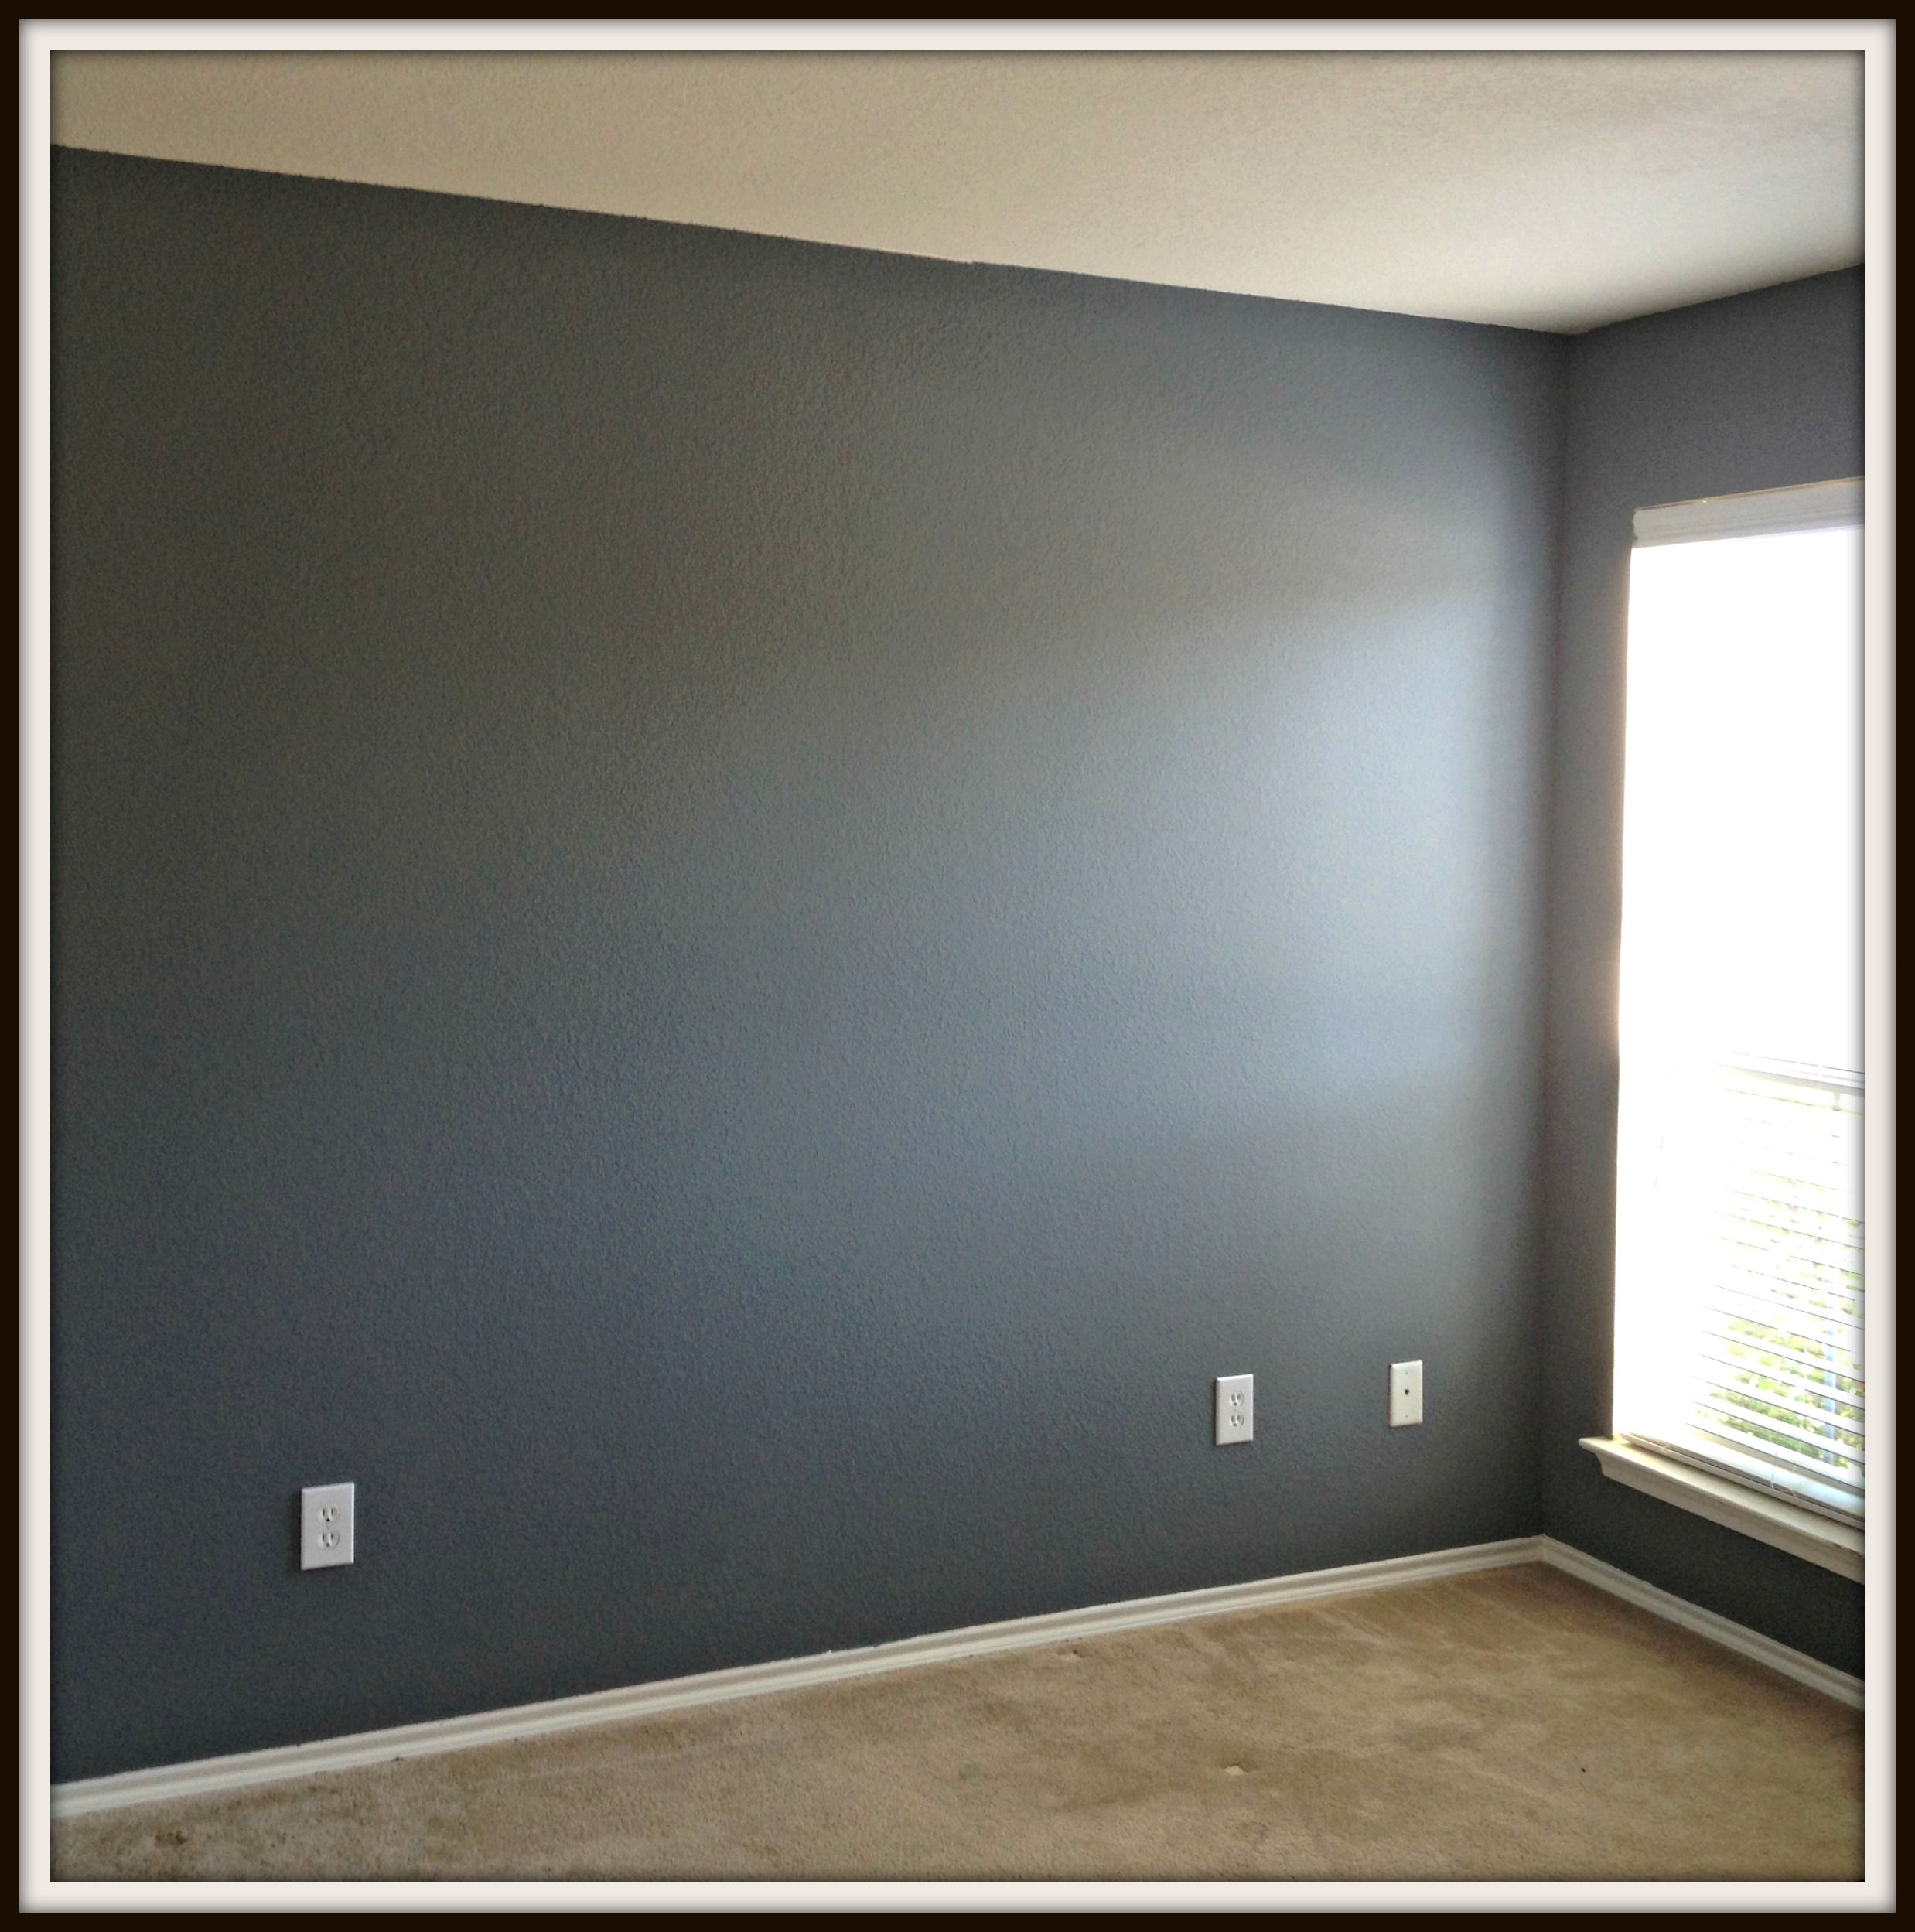 Masculine Paint Colors Google Search Room Wall Garage Bar Interior